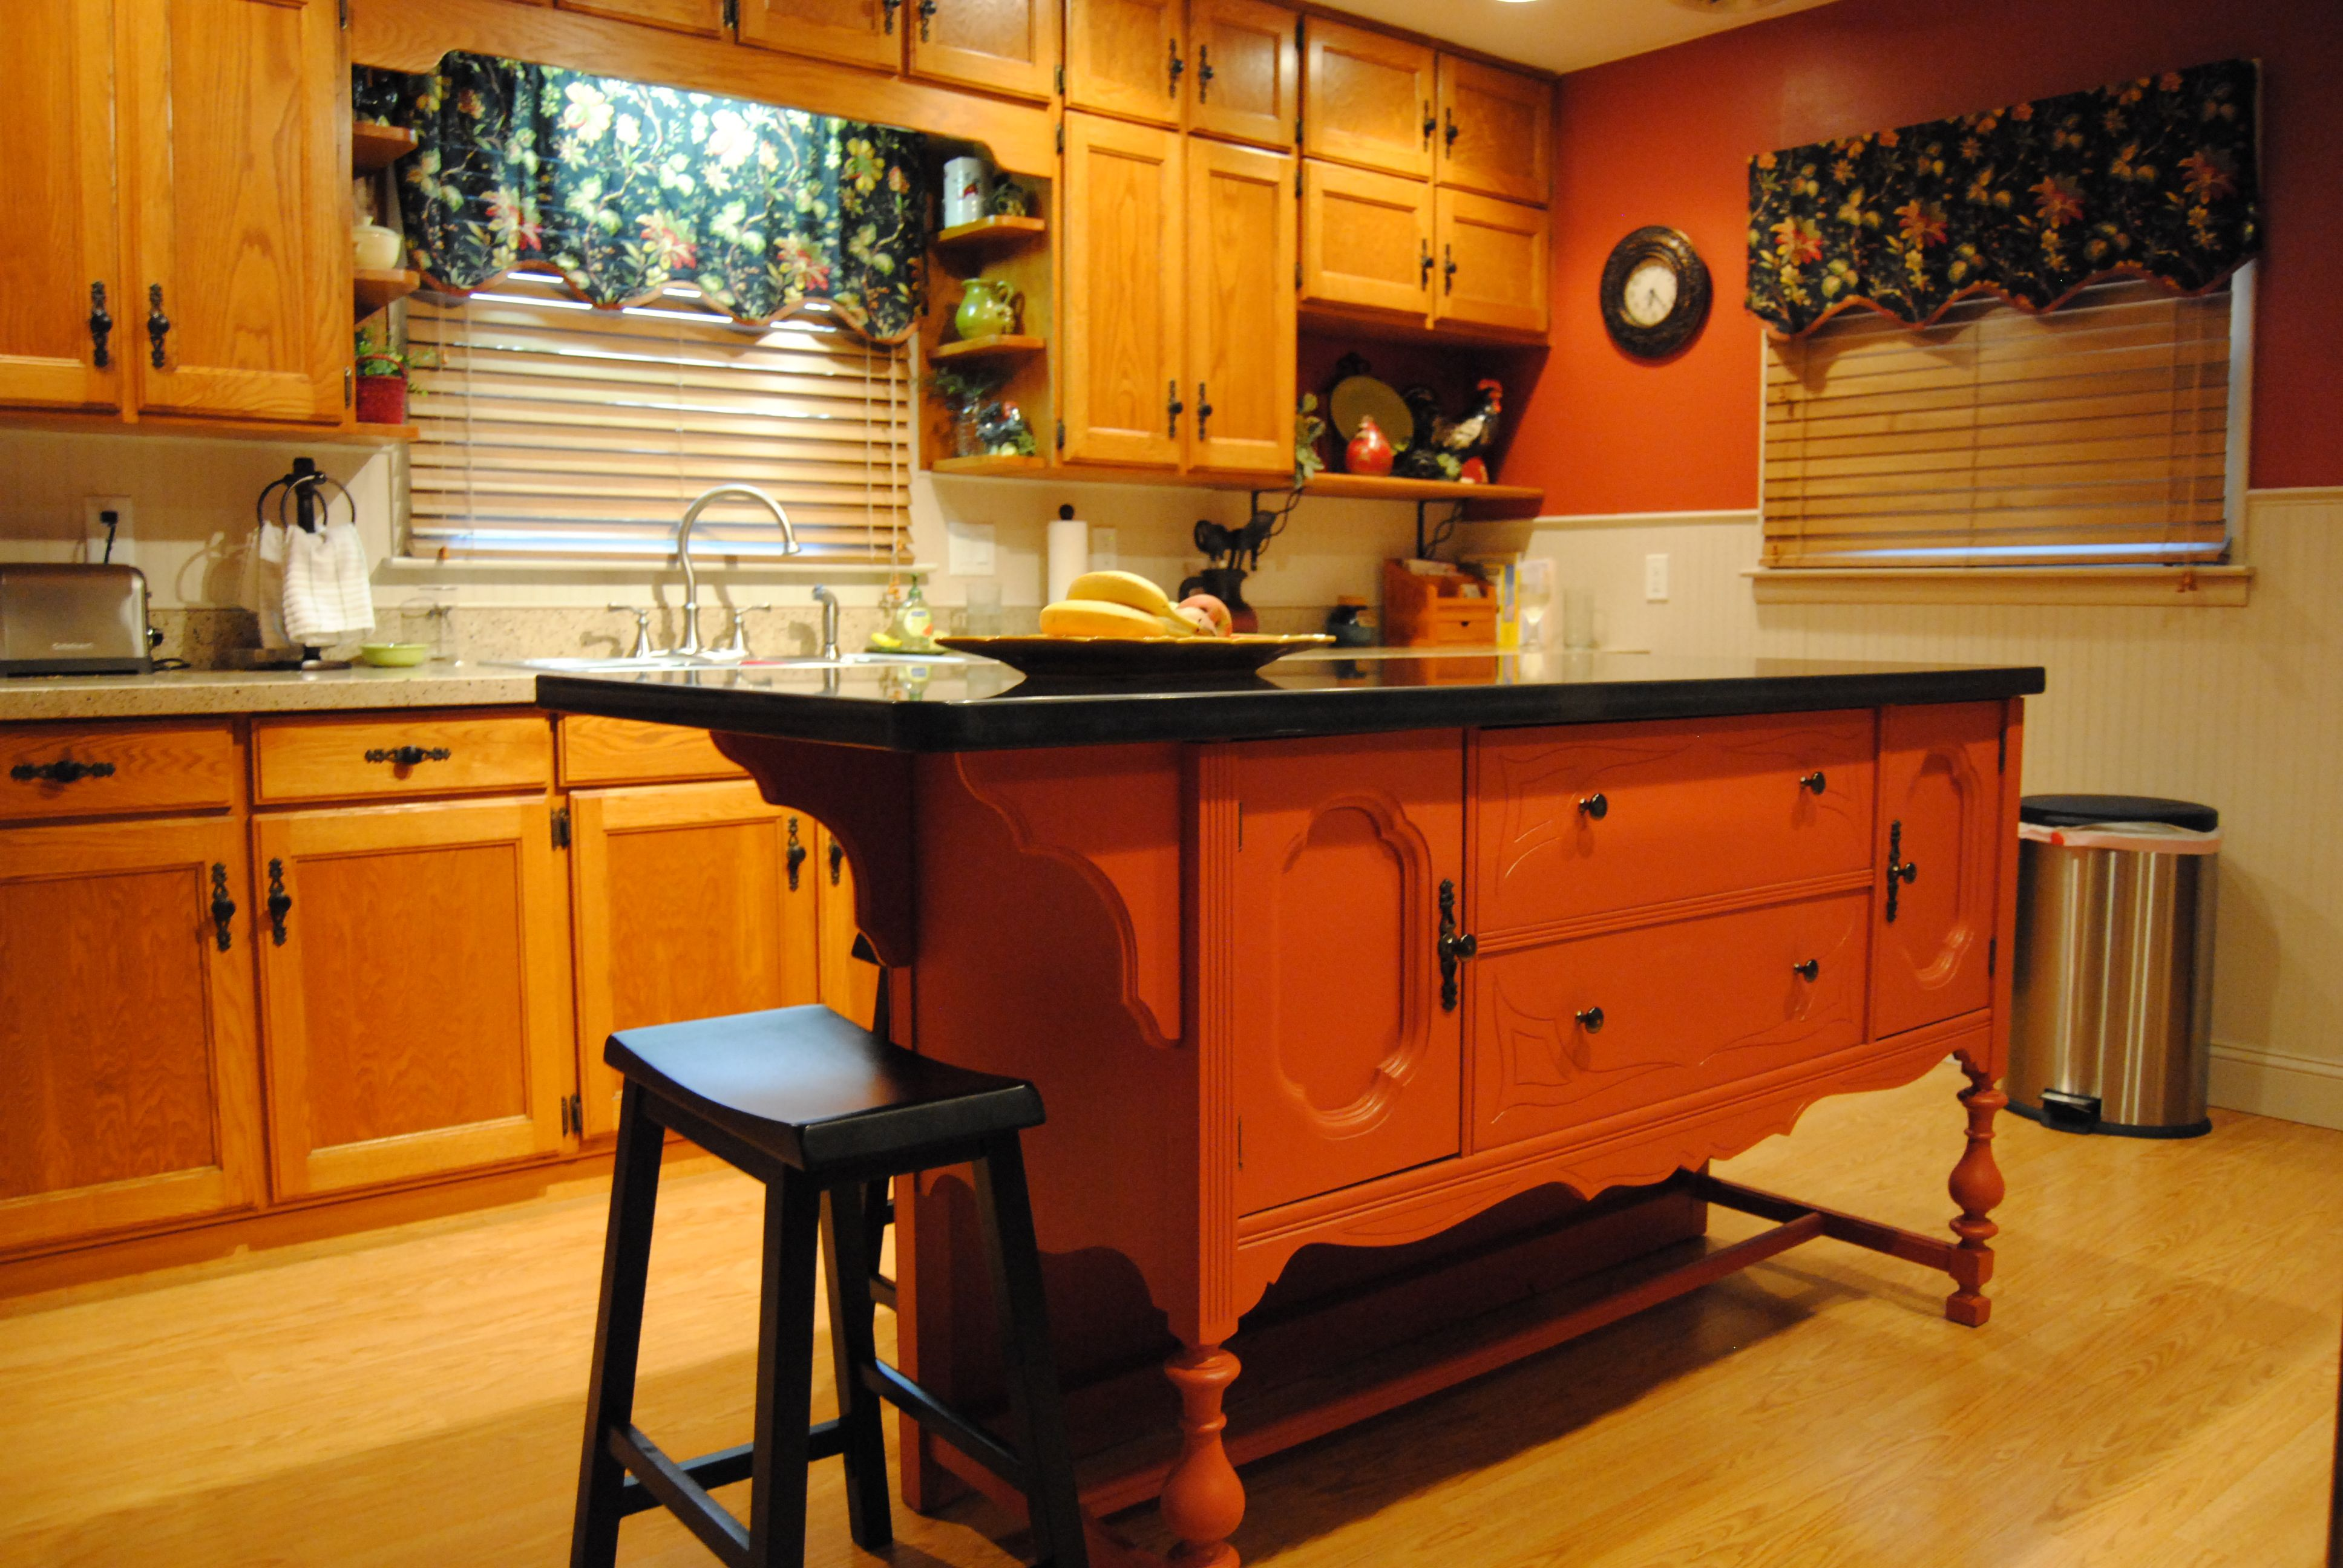 Repurposed Antique Buffet Transformed into an Eat At